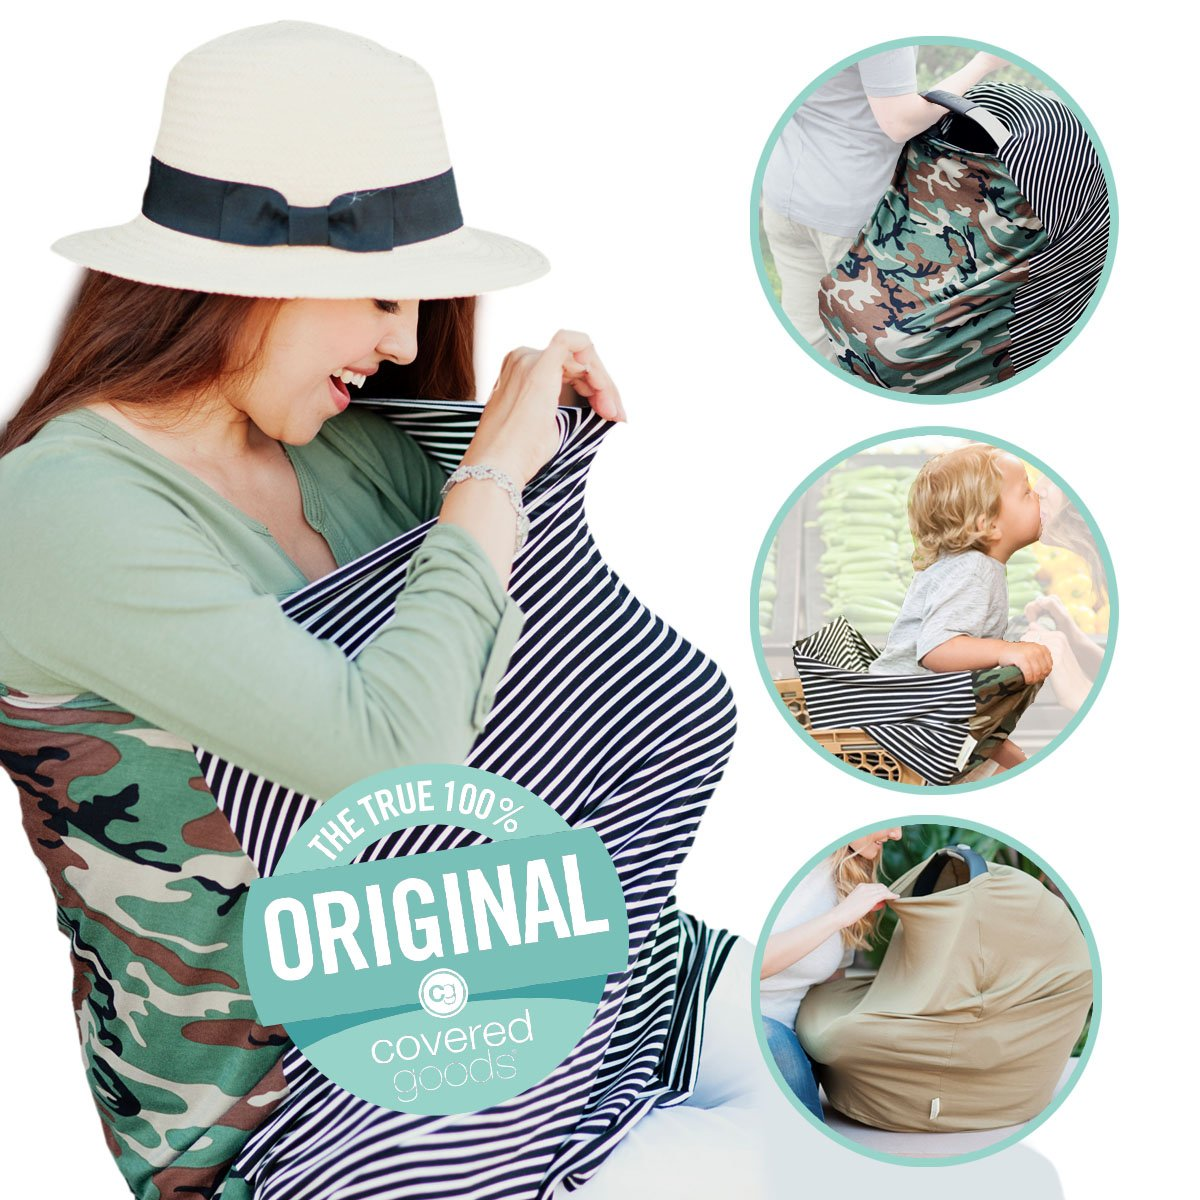 Covered Goods - The Original Multi Use Maternity Breastfeeding Nursing Cover, Infinity Scarf, and Car Seat Cover - Camo Mismatch by Covered Goods